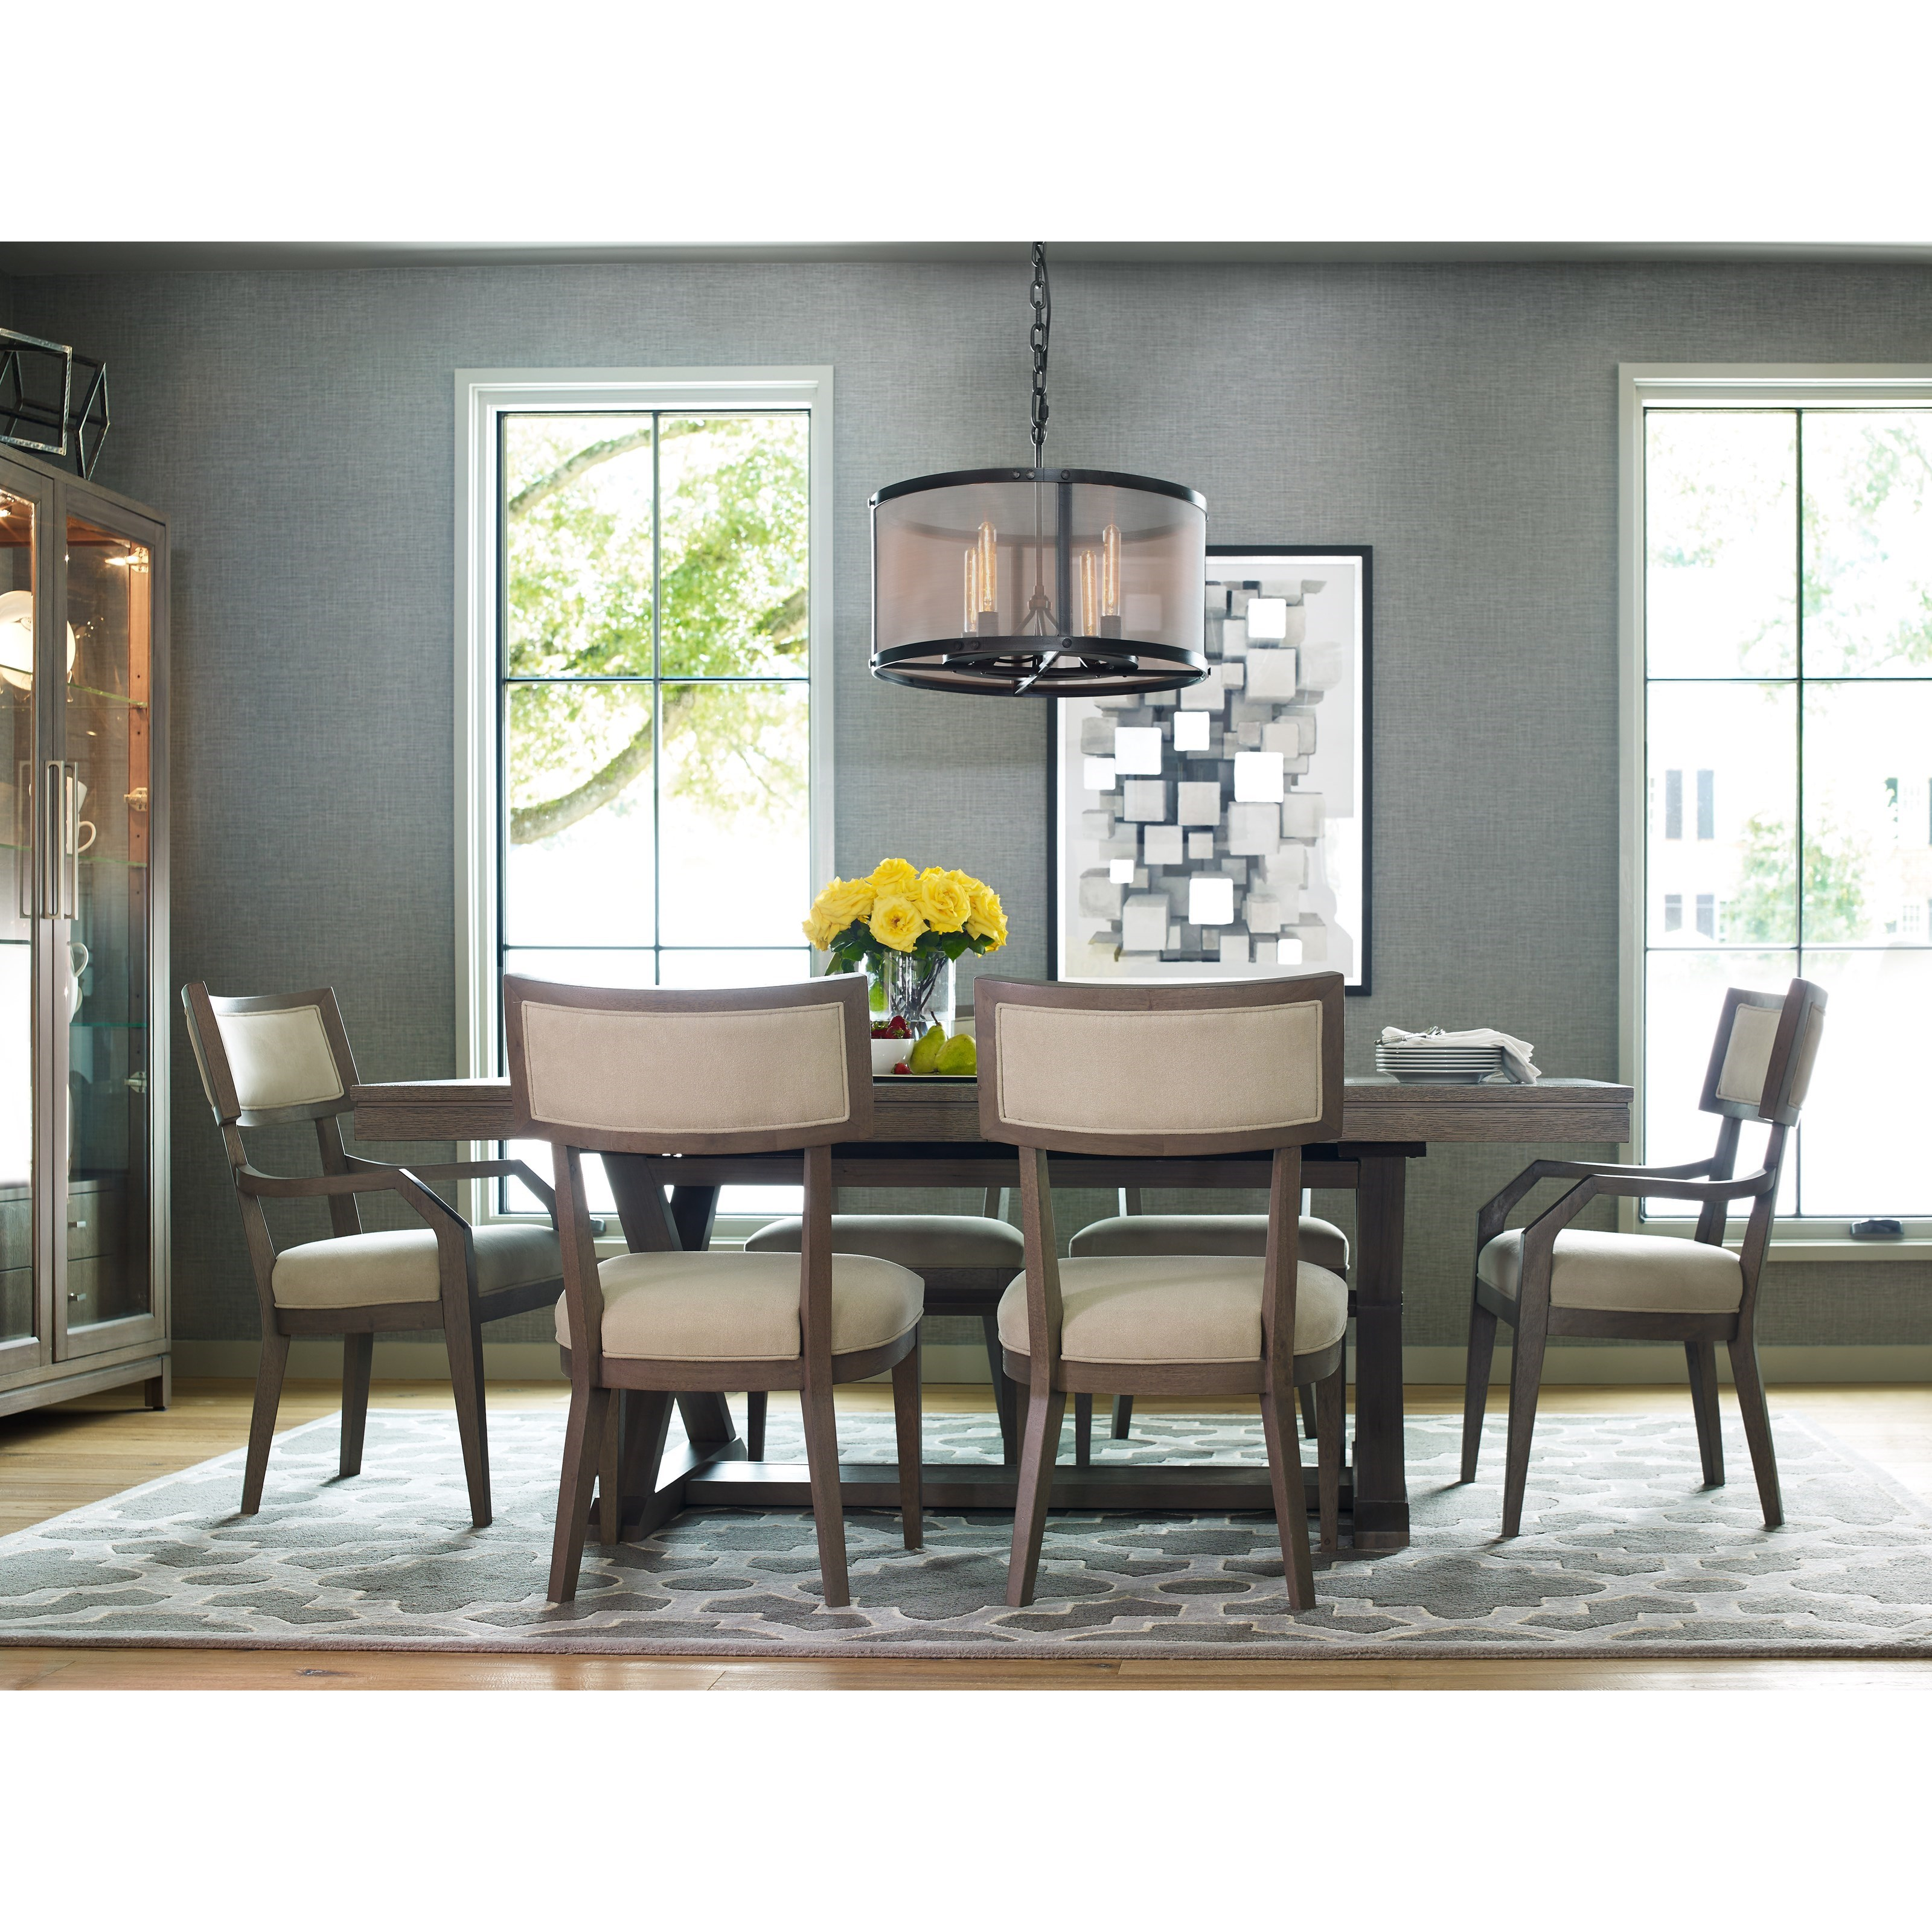 Rachael ray home by legacy classic highline dining room for Legacy classic dining room furniture